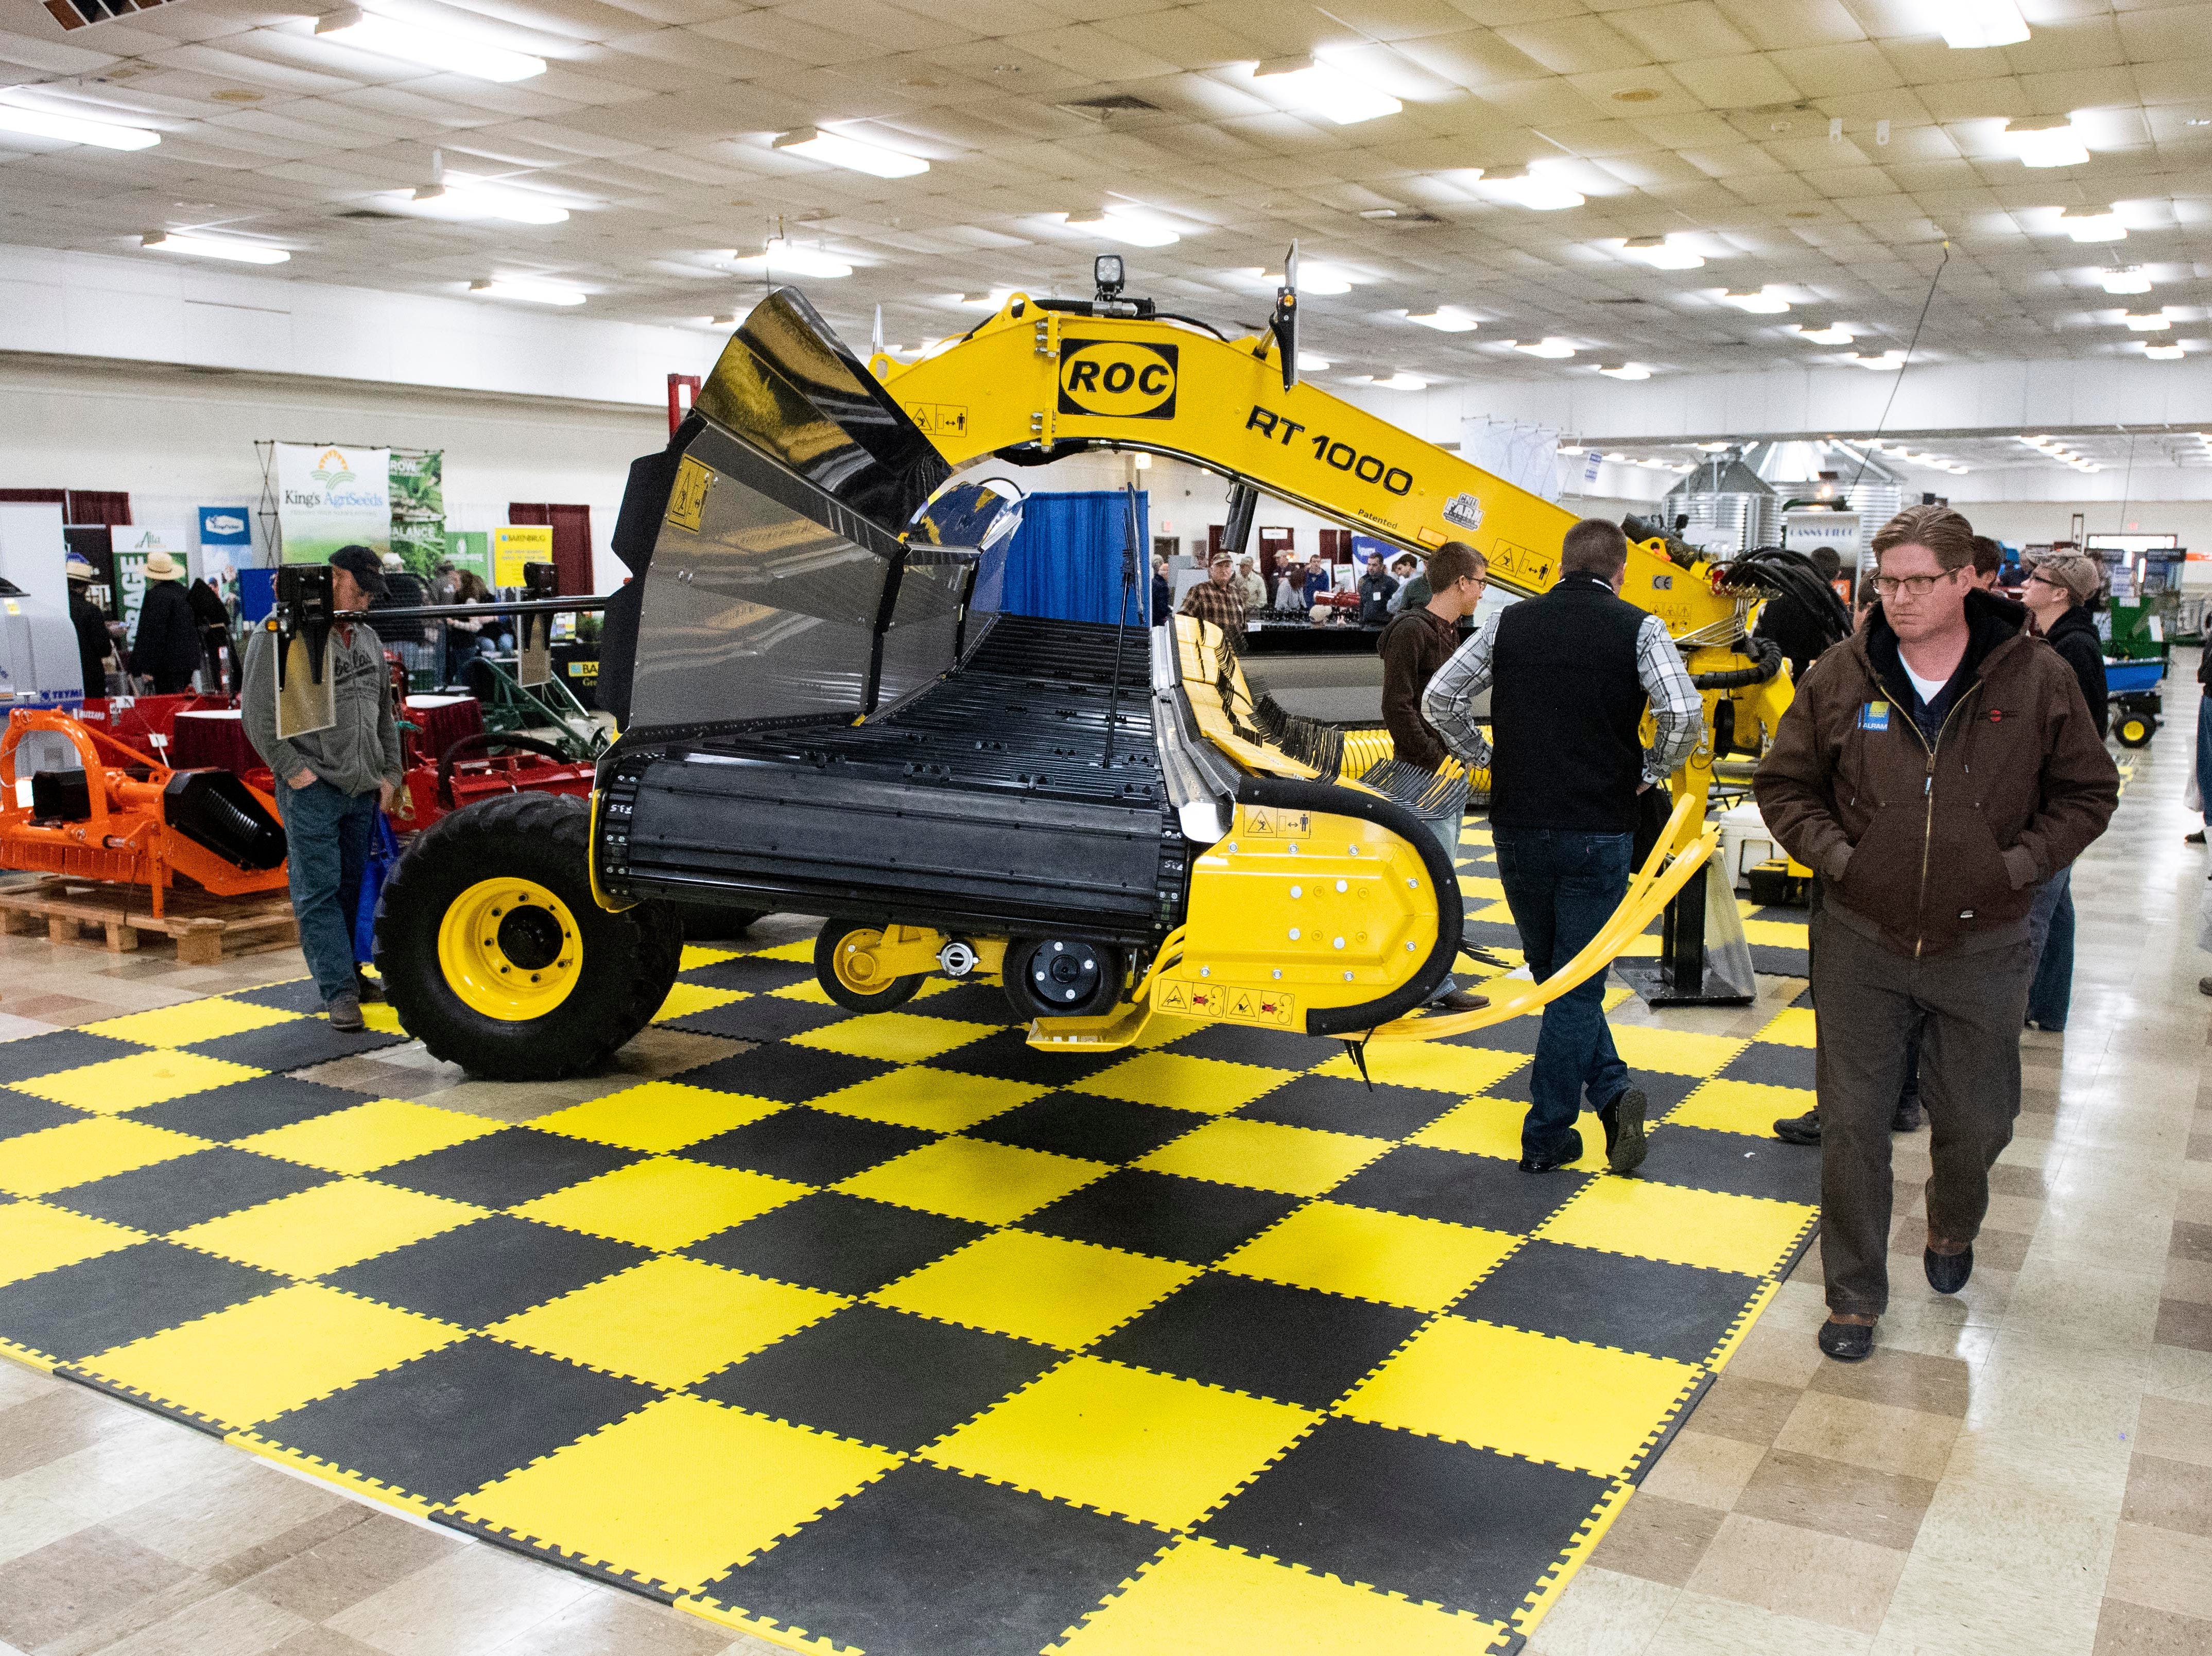 People check out an ROC RT1000 merger during the Keystone Farm Show, Tuesday, Jan. 8, 2019. The Keystone Farm Show has nearly 420 vendors and is expected to bring up to 15,000 people to the York Expo Center. The show runs through Thursday, Jan. 10.